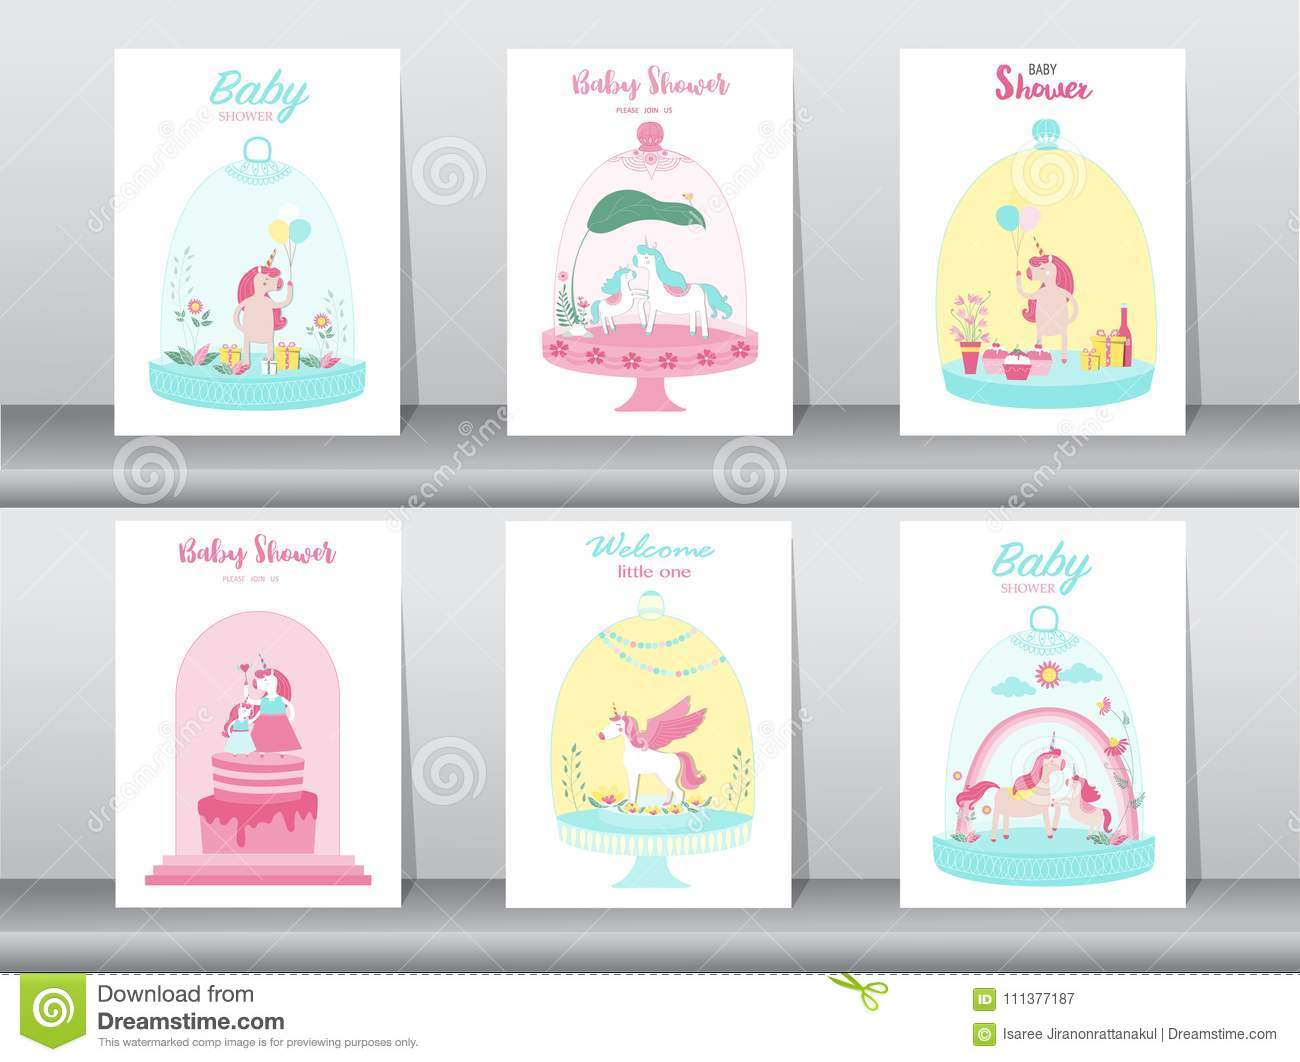 Set Of Baby Shower Cardsposterinvitations Cardstemplategreeting Cards